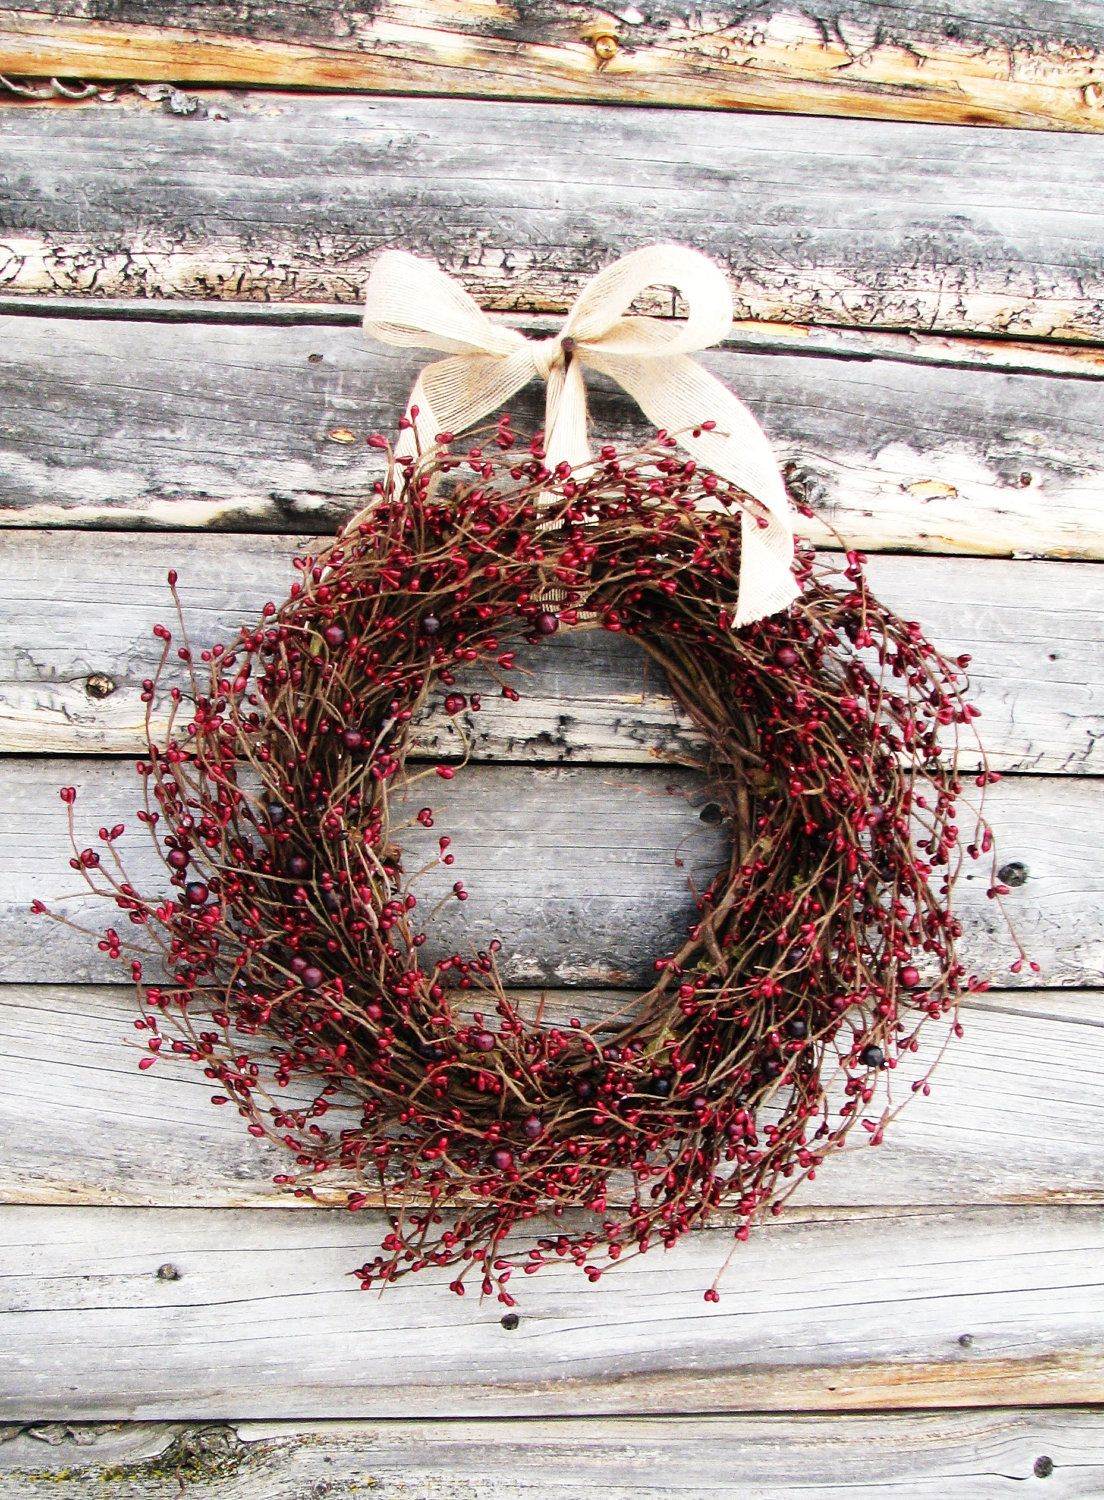 CRANBERRY RED Scented Spiced Cran Apple Autumn Door Decor Rustic Christmas Wreath